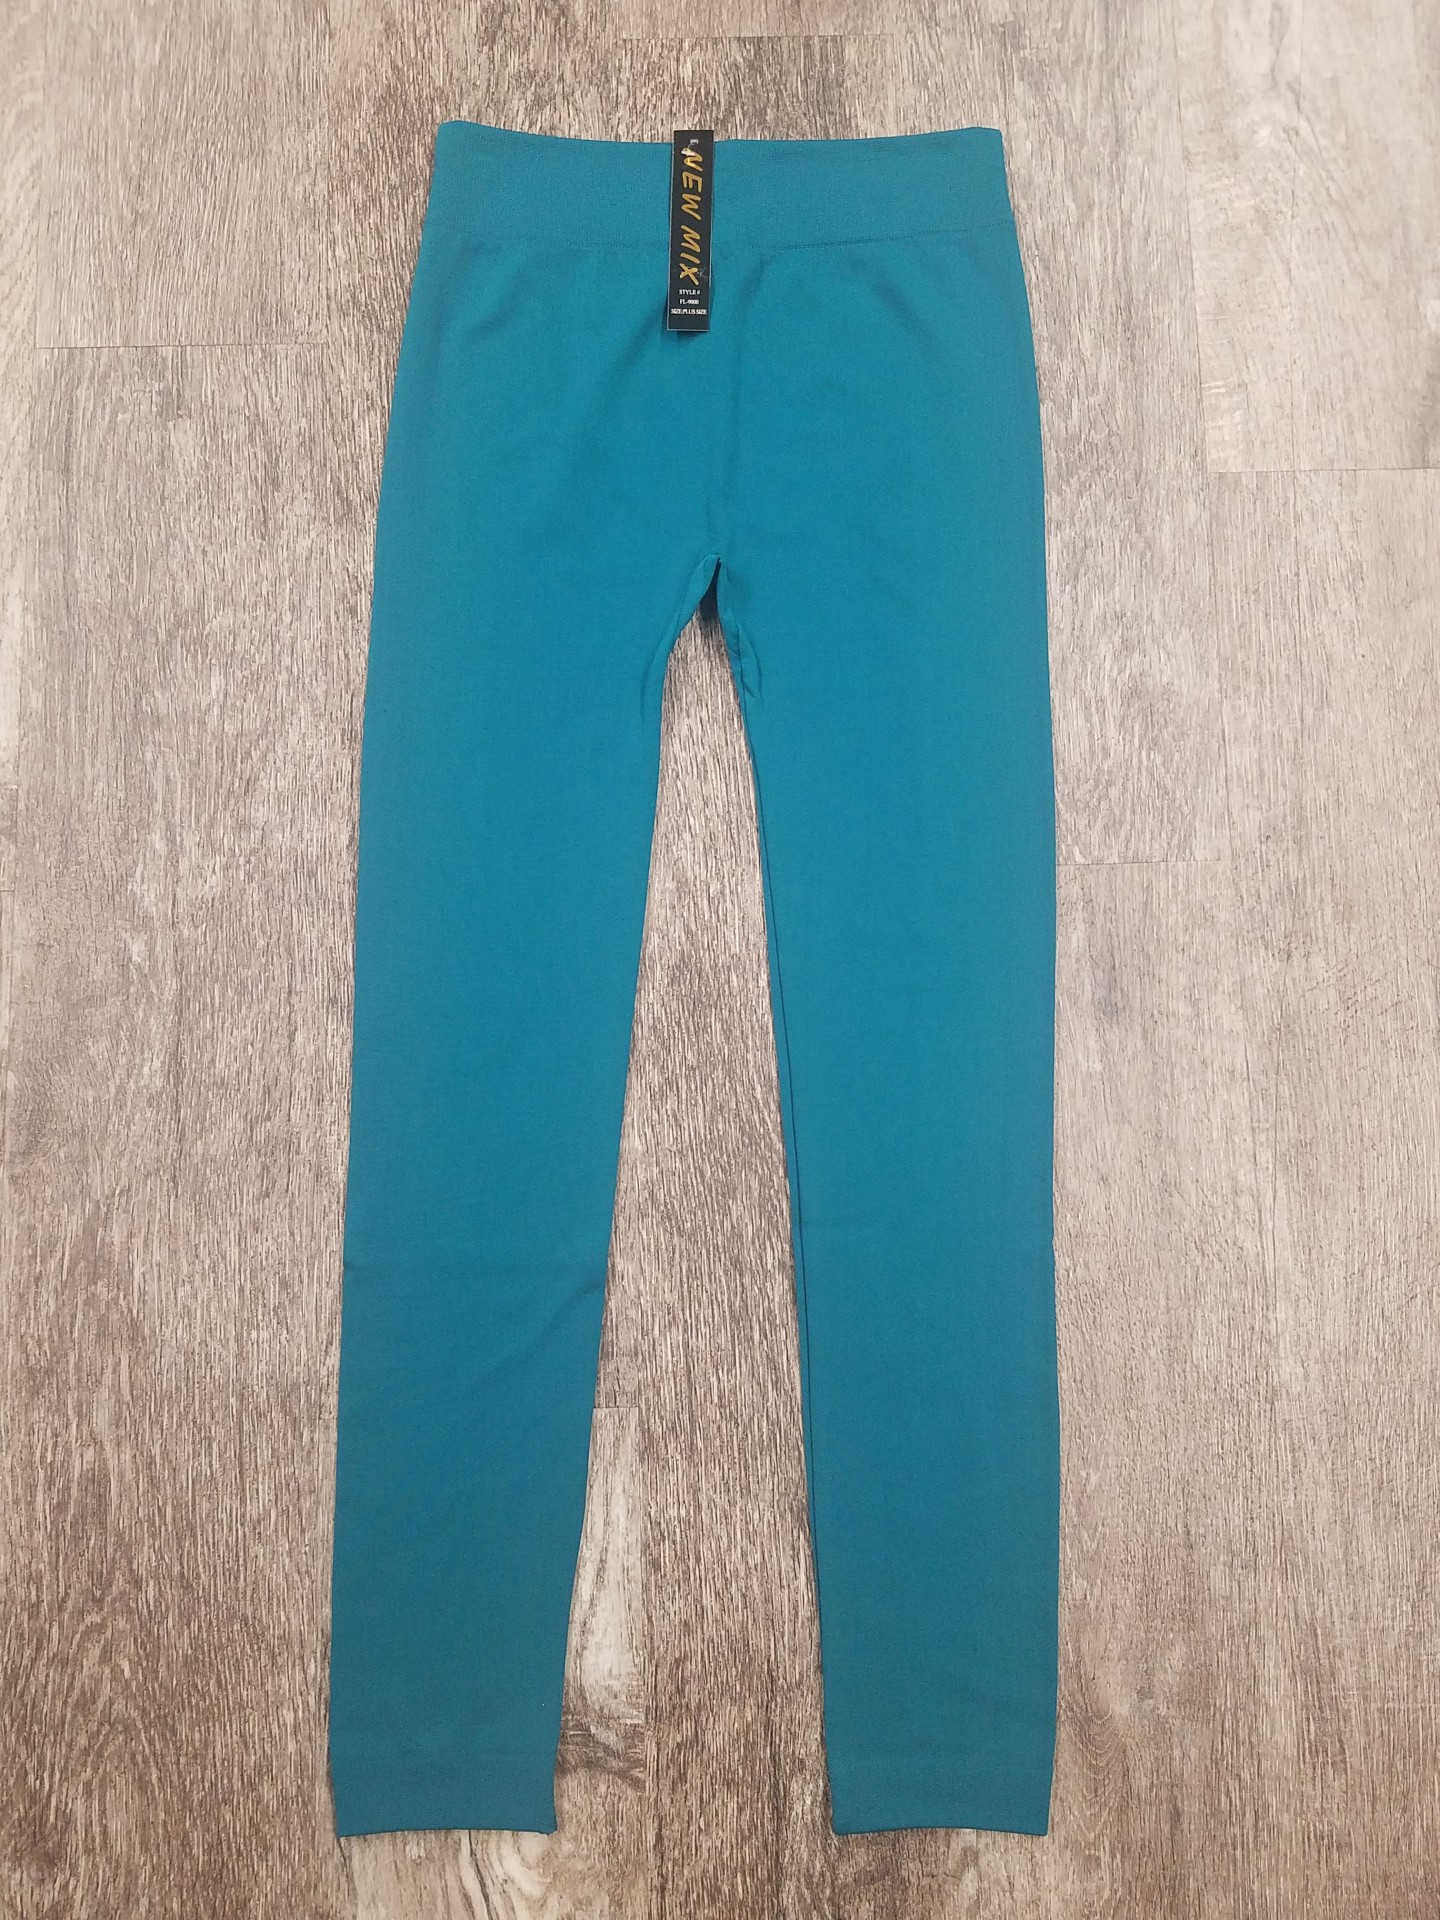 Turquoise Fleece Lined Legging *Curvy Approved*